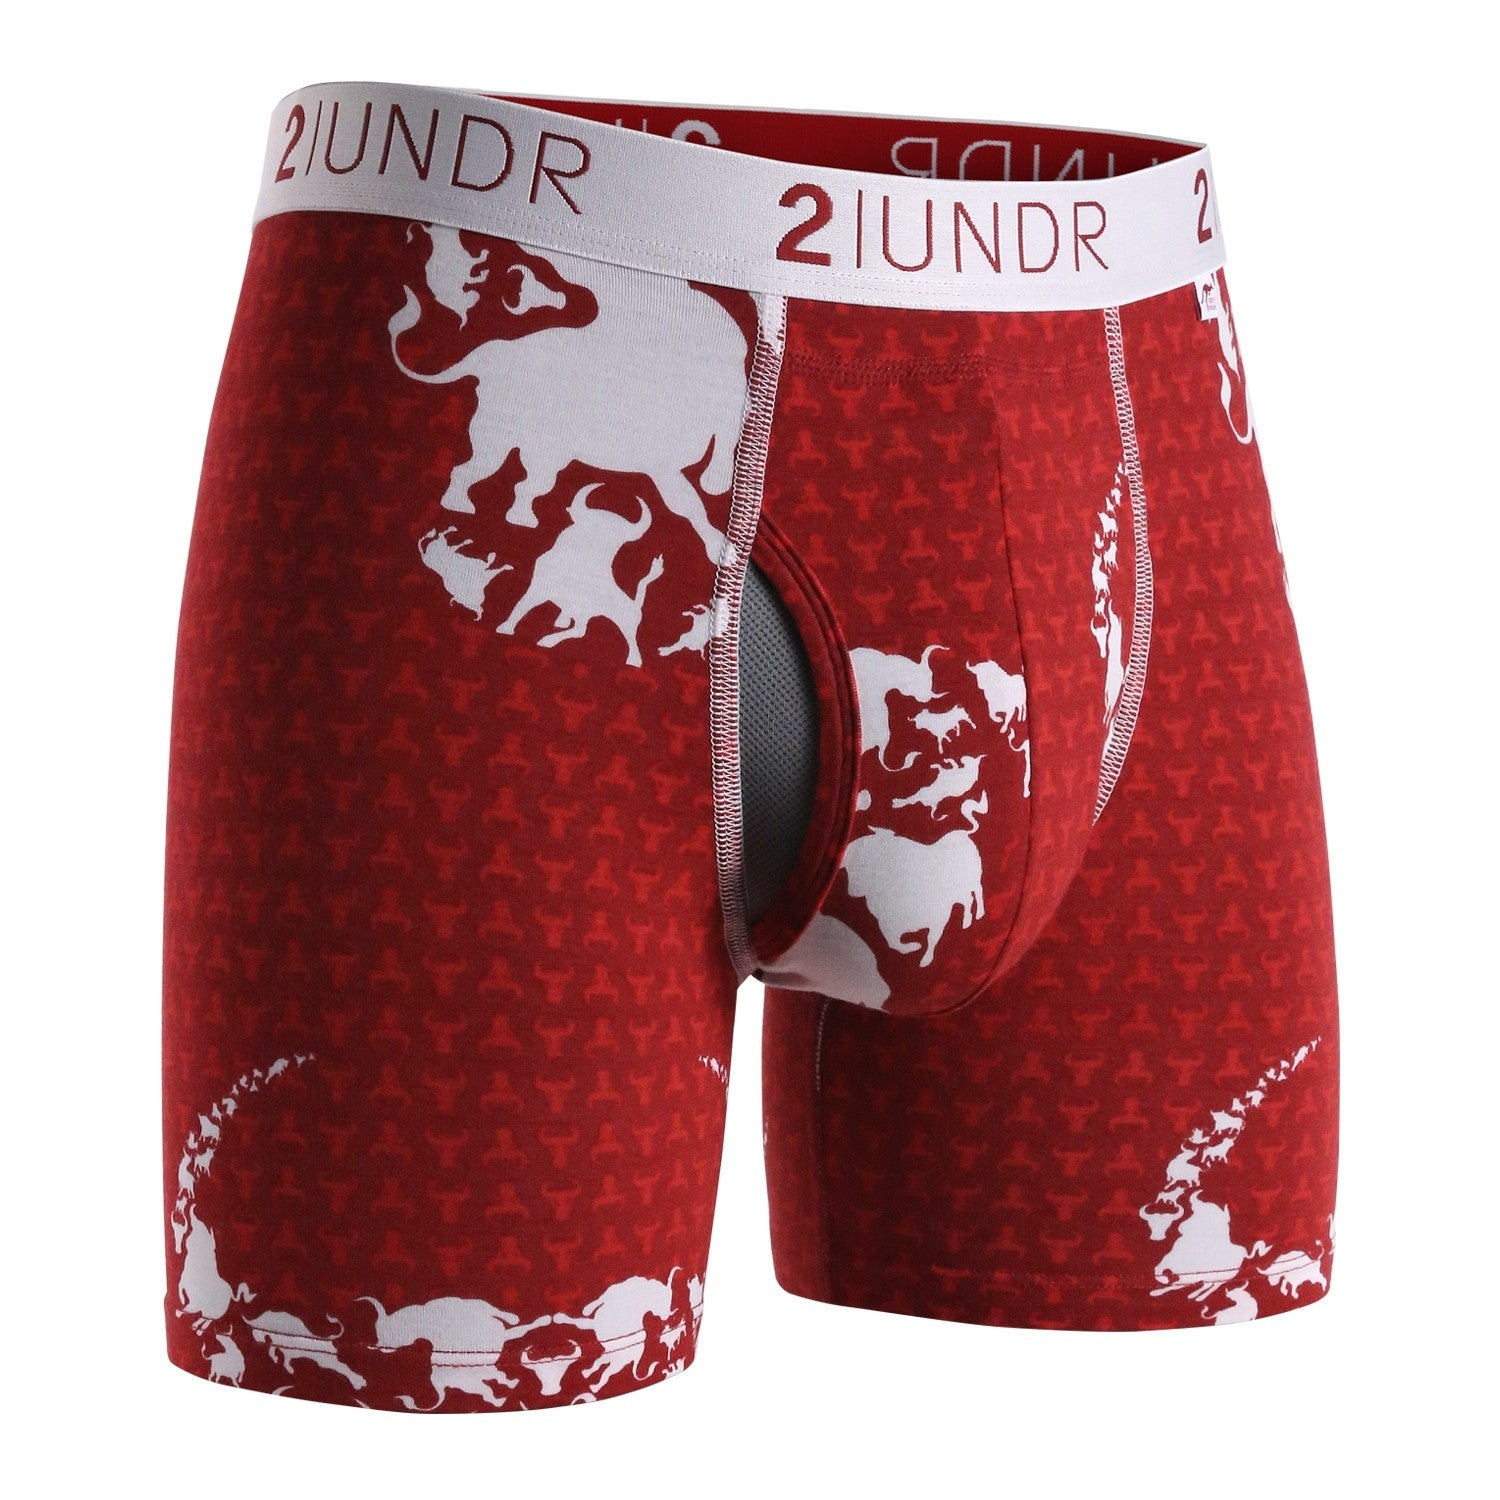 "Swing Shift 6"" Boxer Brief - Pamplona"